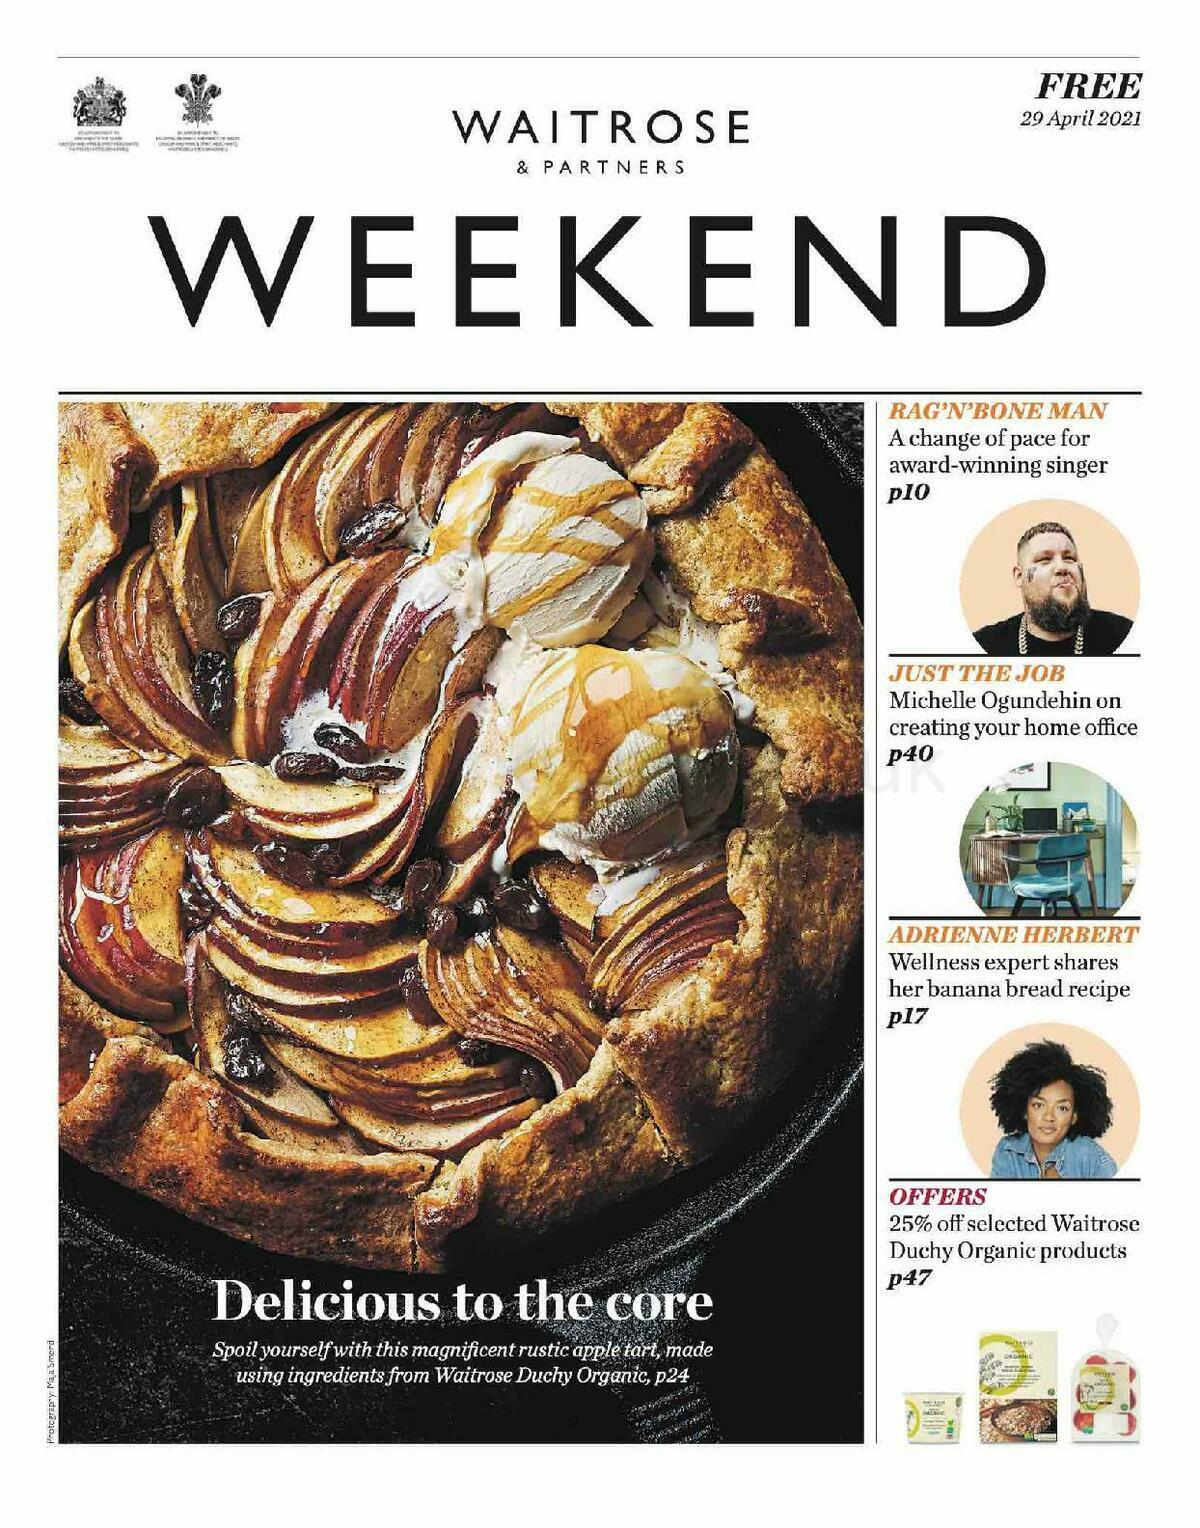 Waitrose Offers from April 29